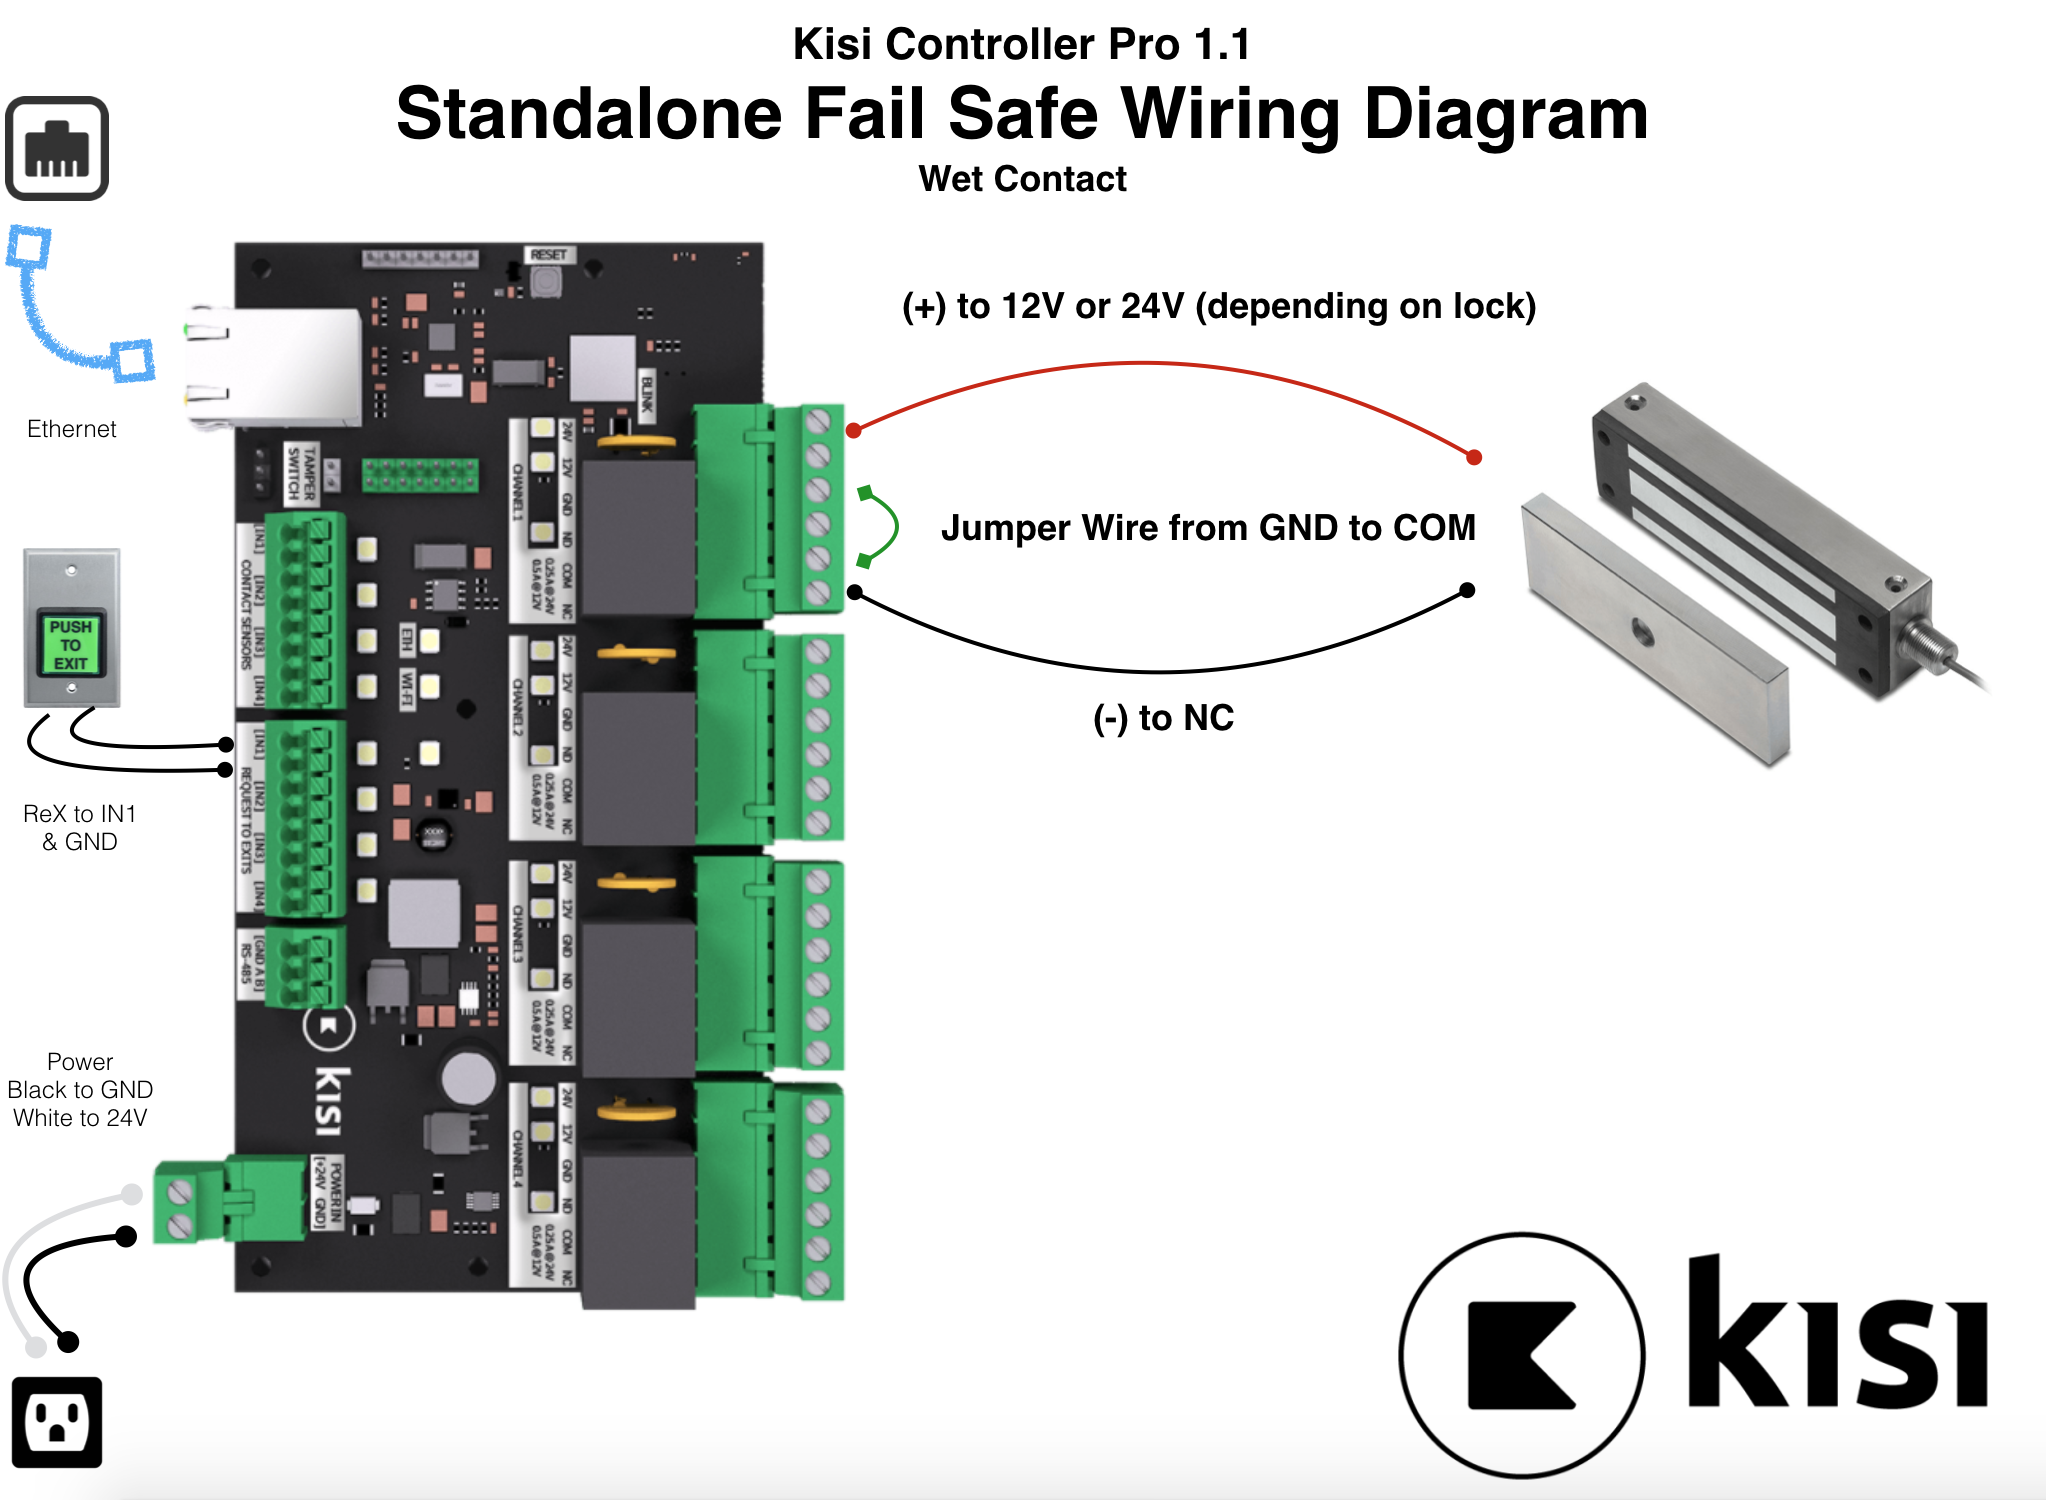 Standalone Fail Safe Electric Lock Kisi 485 Wiring Connection Diagram Screen Shot 2018 08 24 At 93312 Am